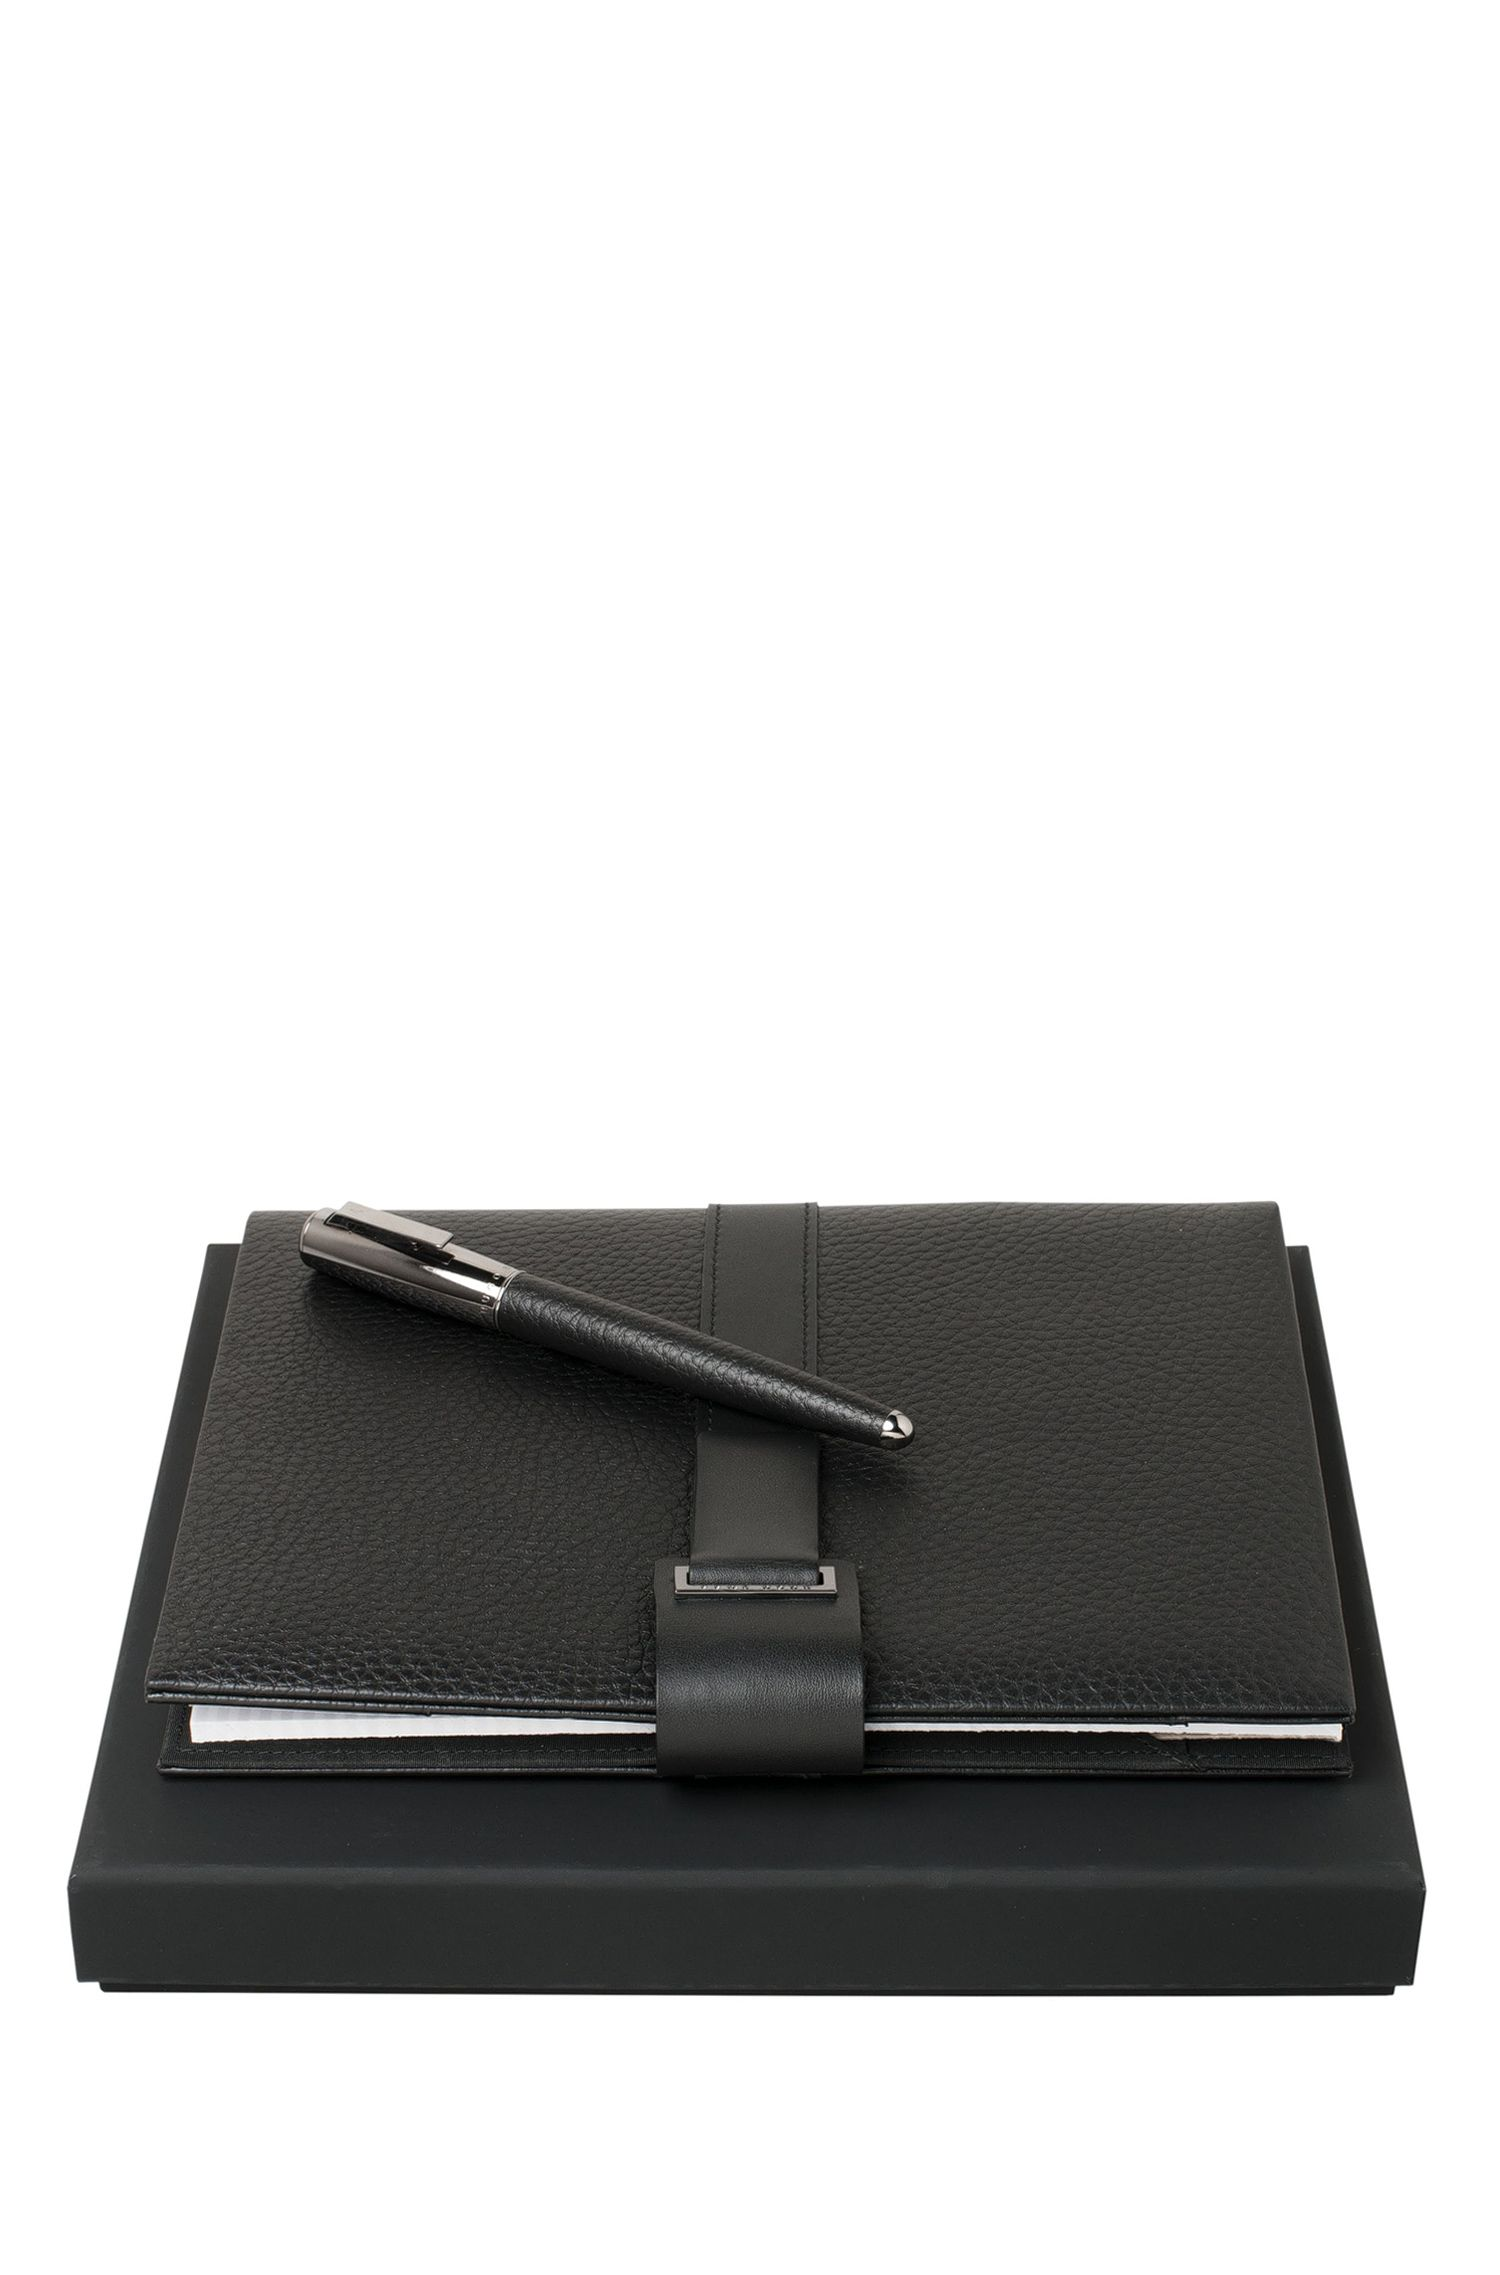 'HPMR604A' | Pure Rollerball Pen Folder Set